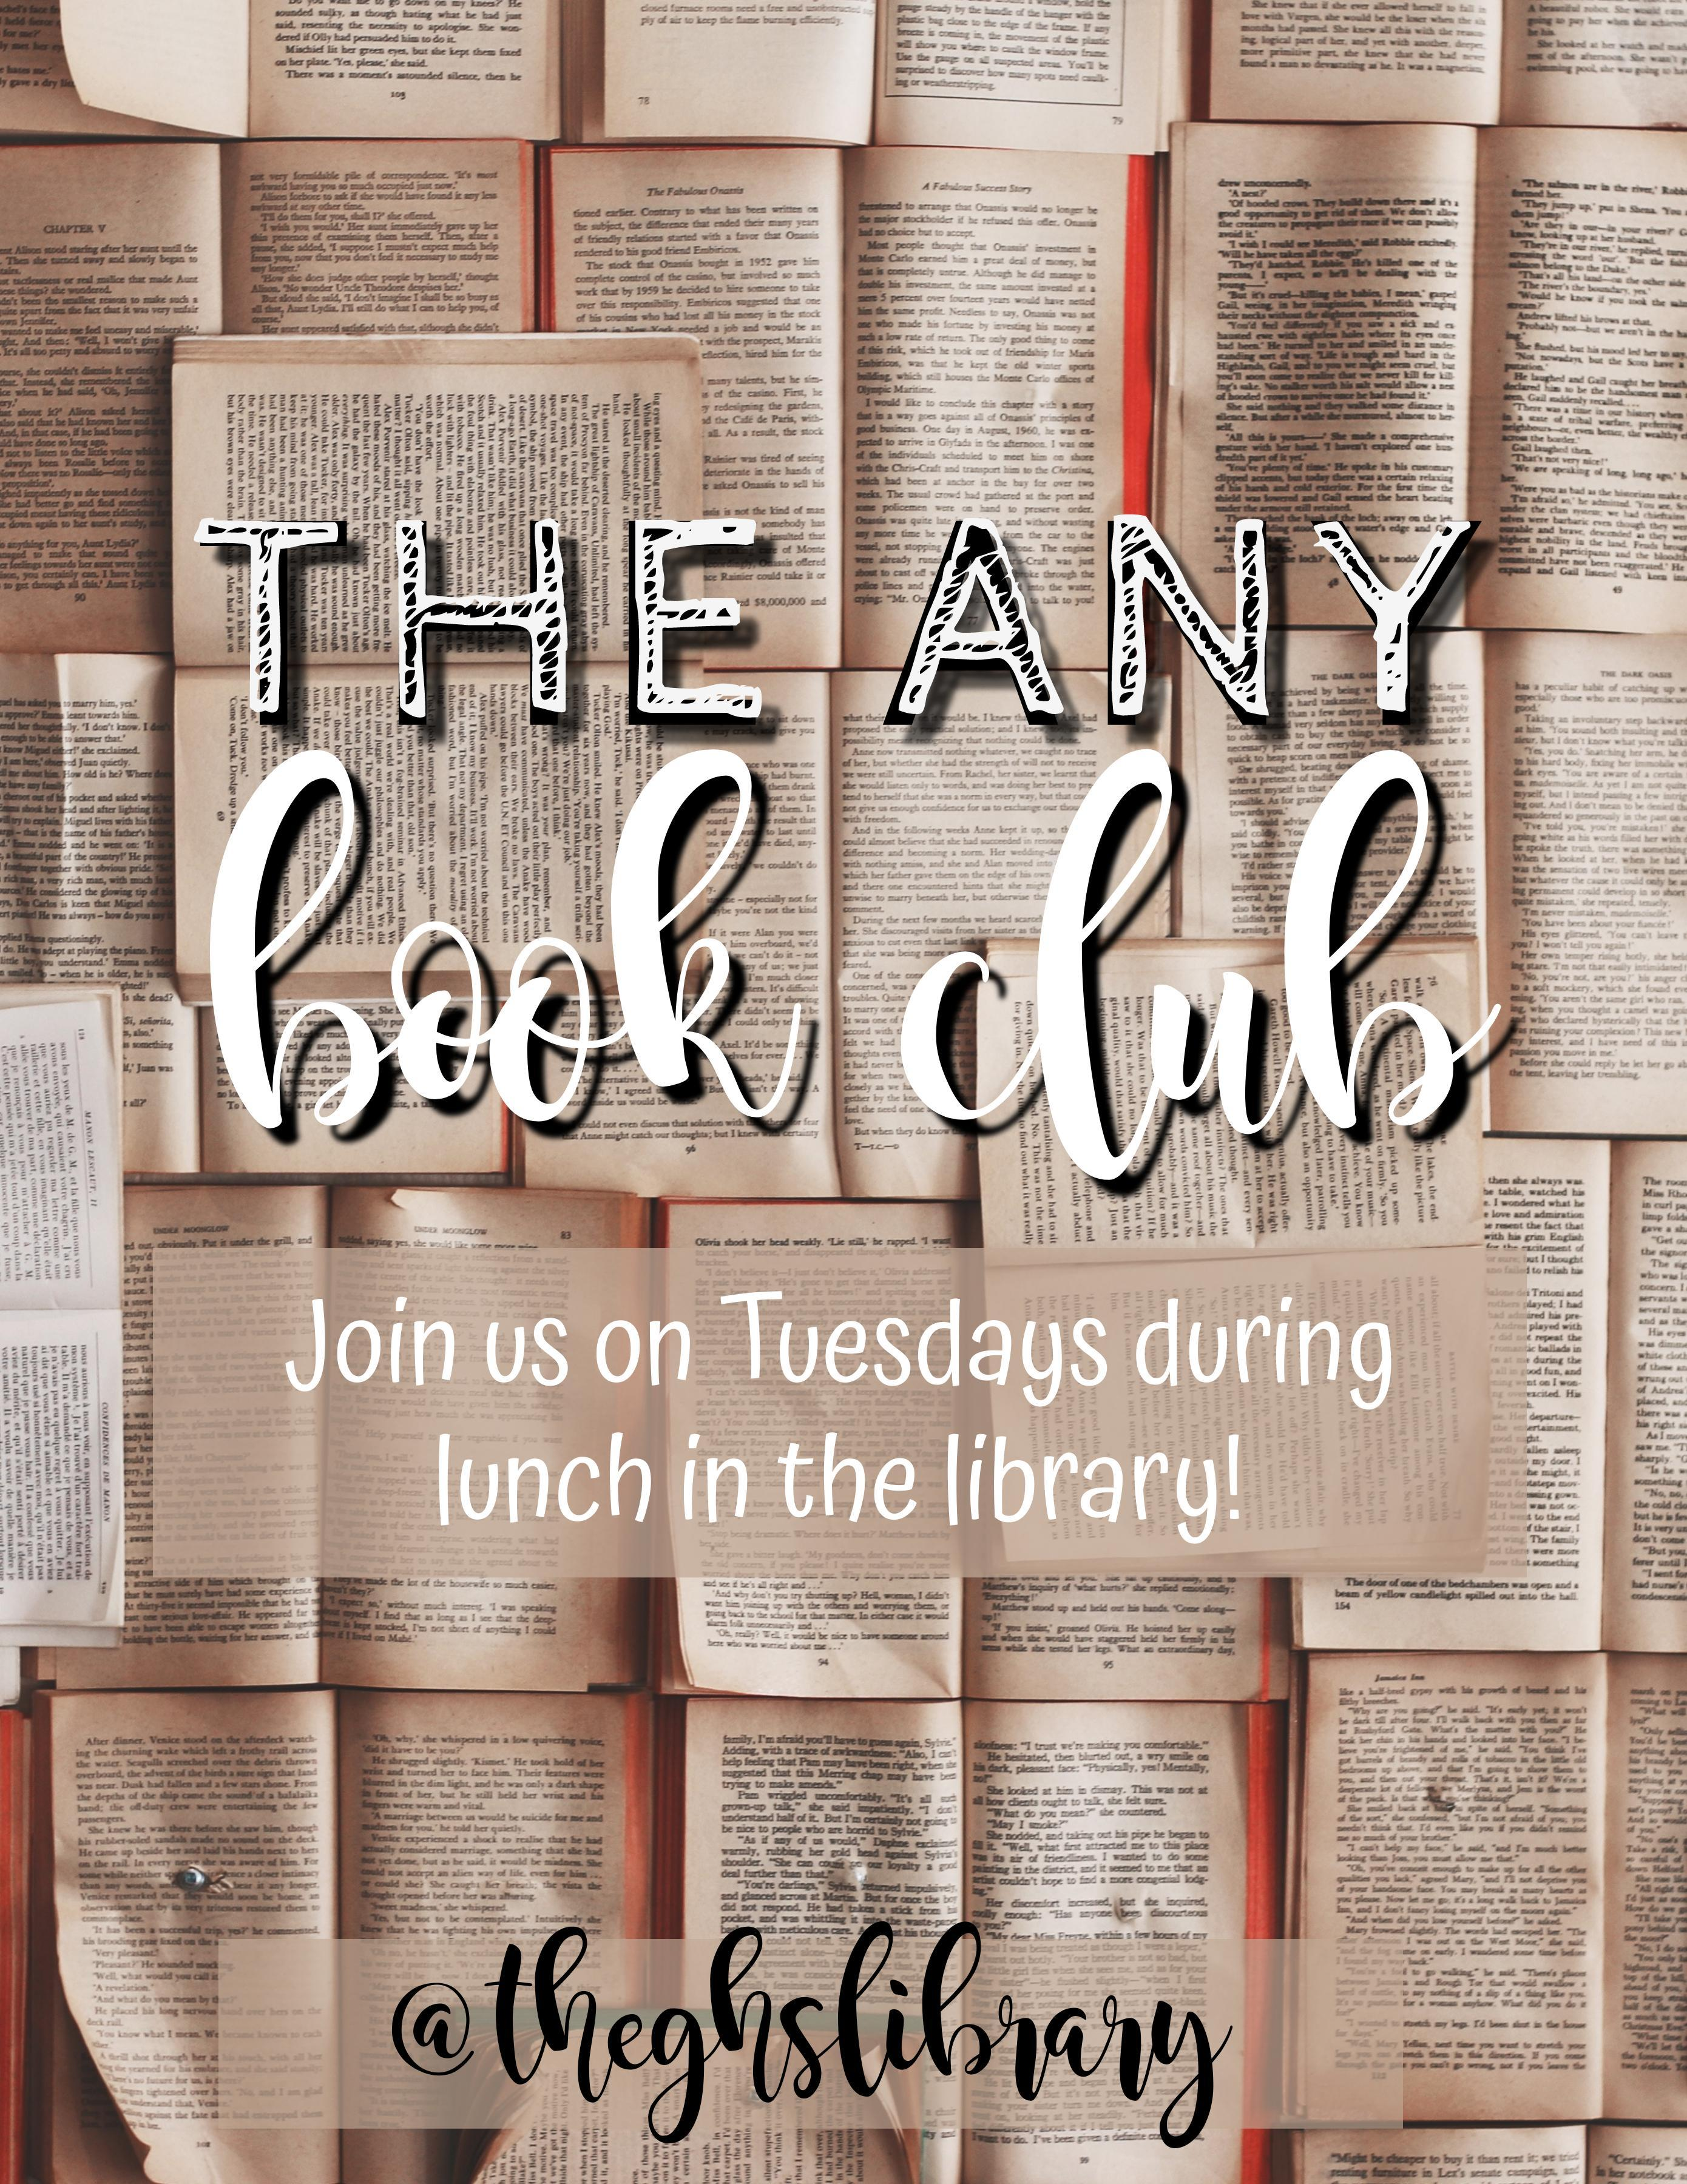 The Any Book Club meets Tuesdays during lunch in the Library :)